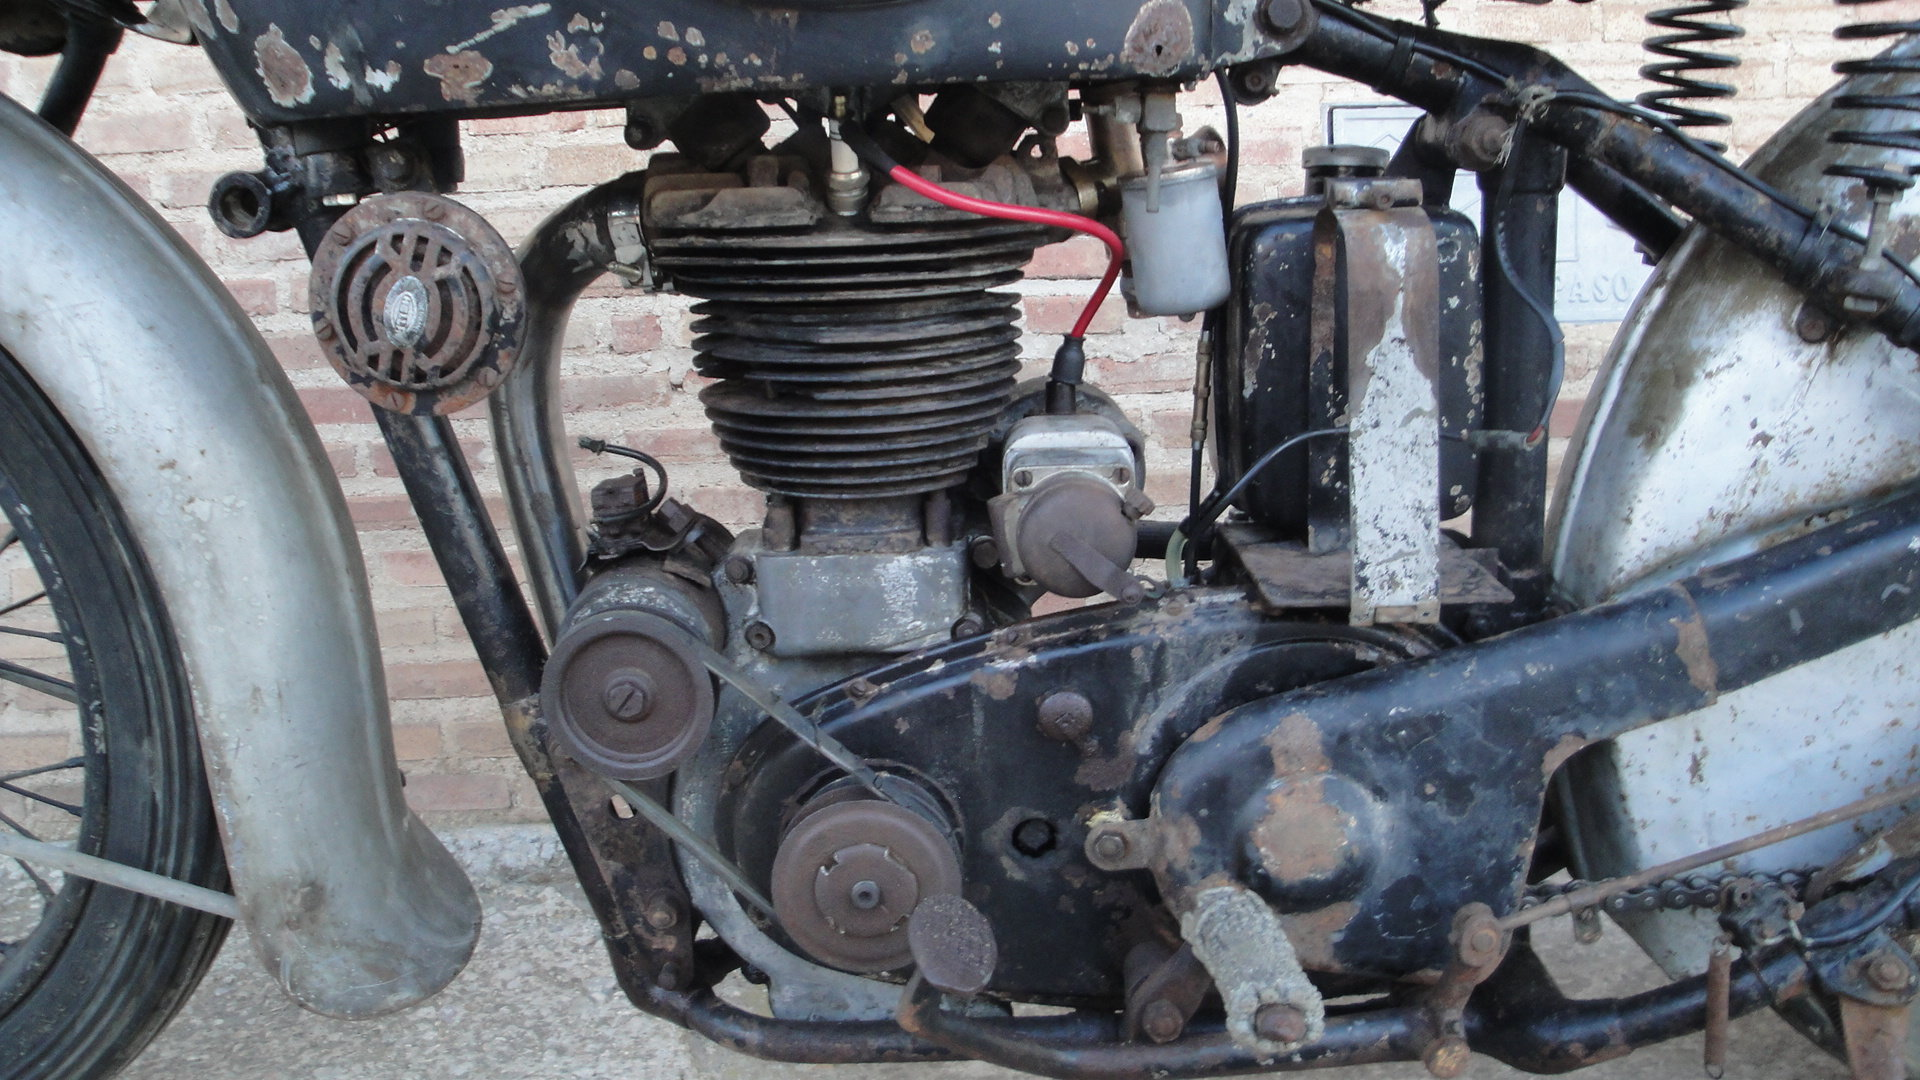 1936 Velocette  mss 500cc ohv años For Sale (picture 6 of 6)